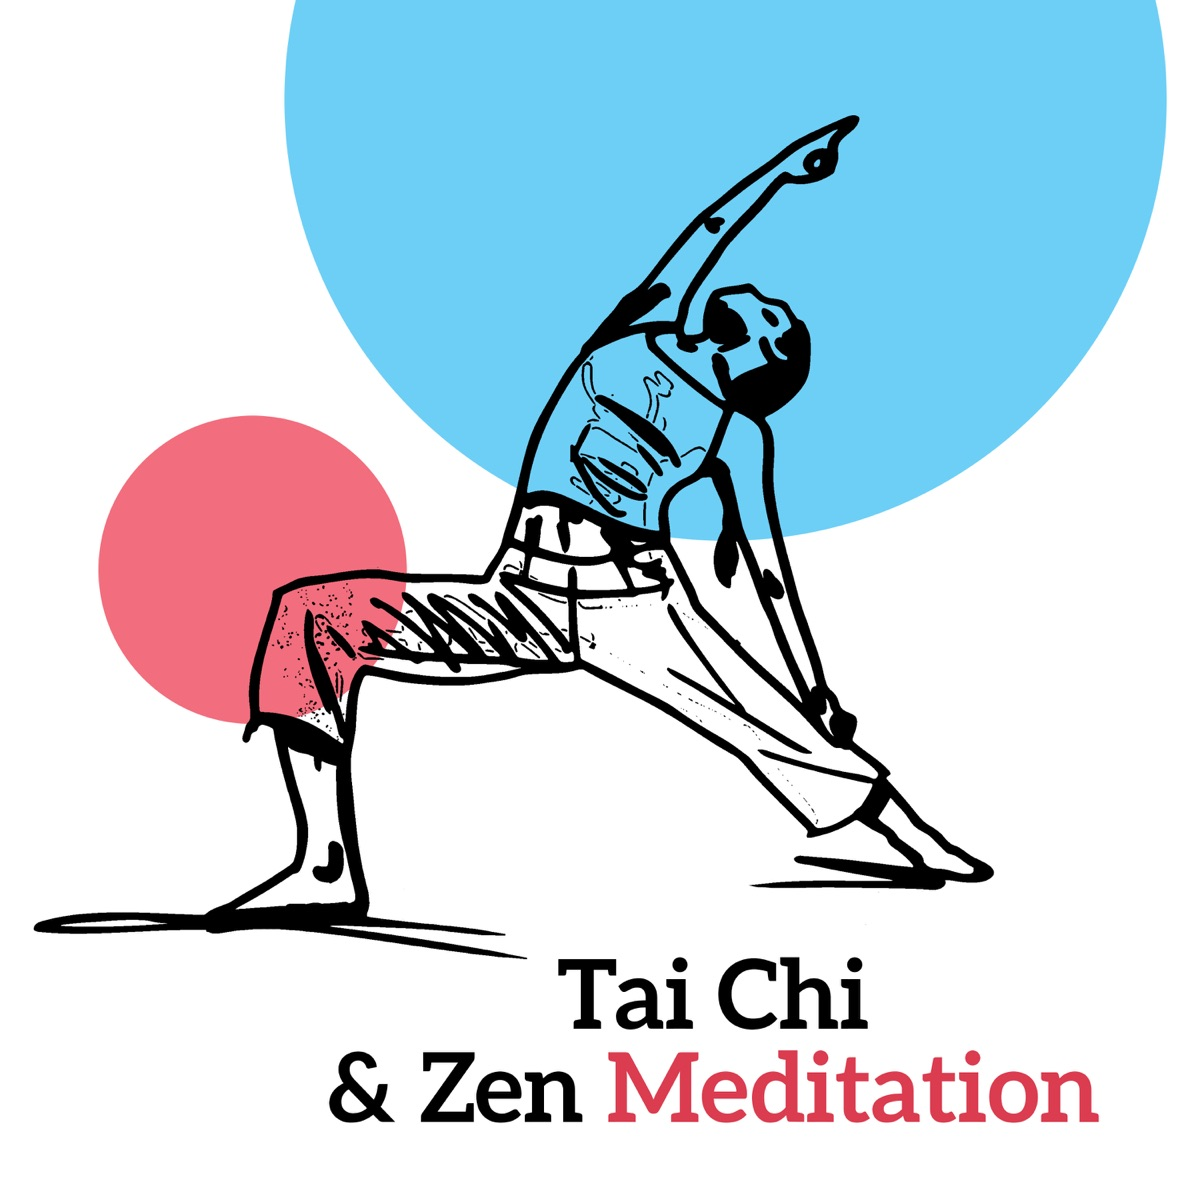 Tai Chi & Zen Meditation: 50 Asian Tracks for Chanting Om